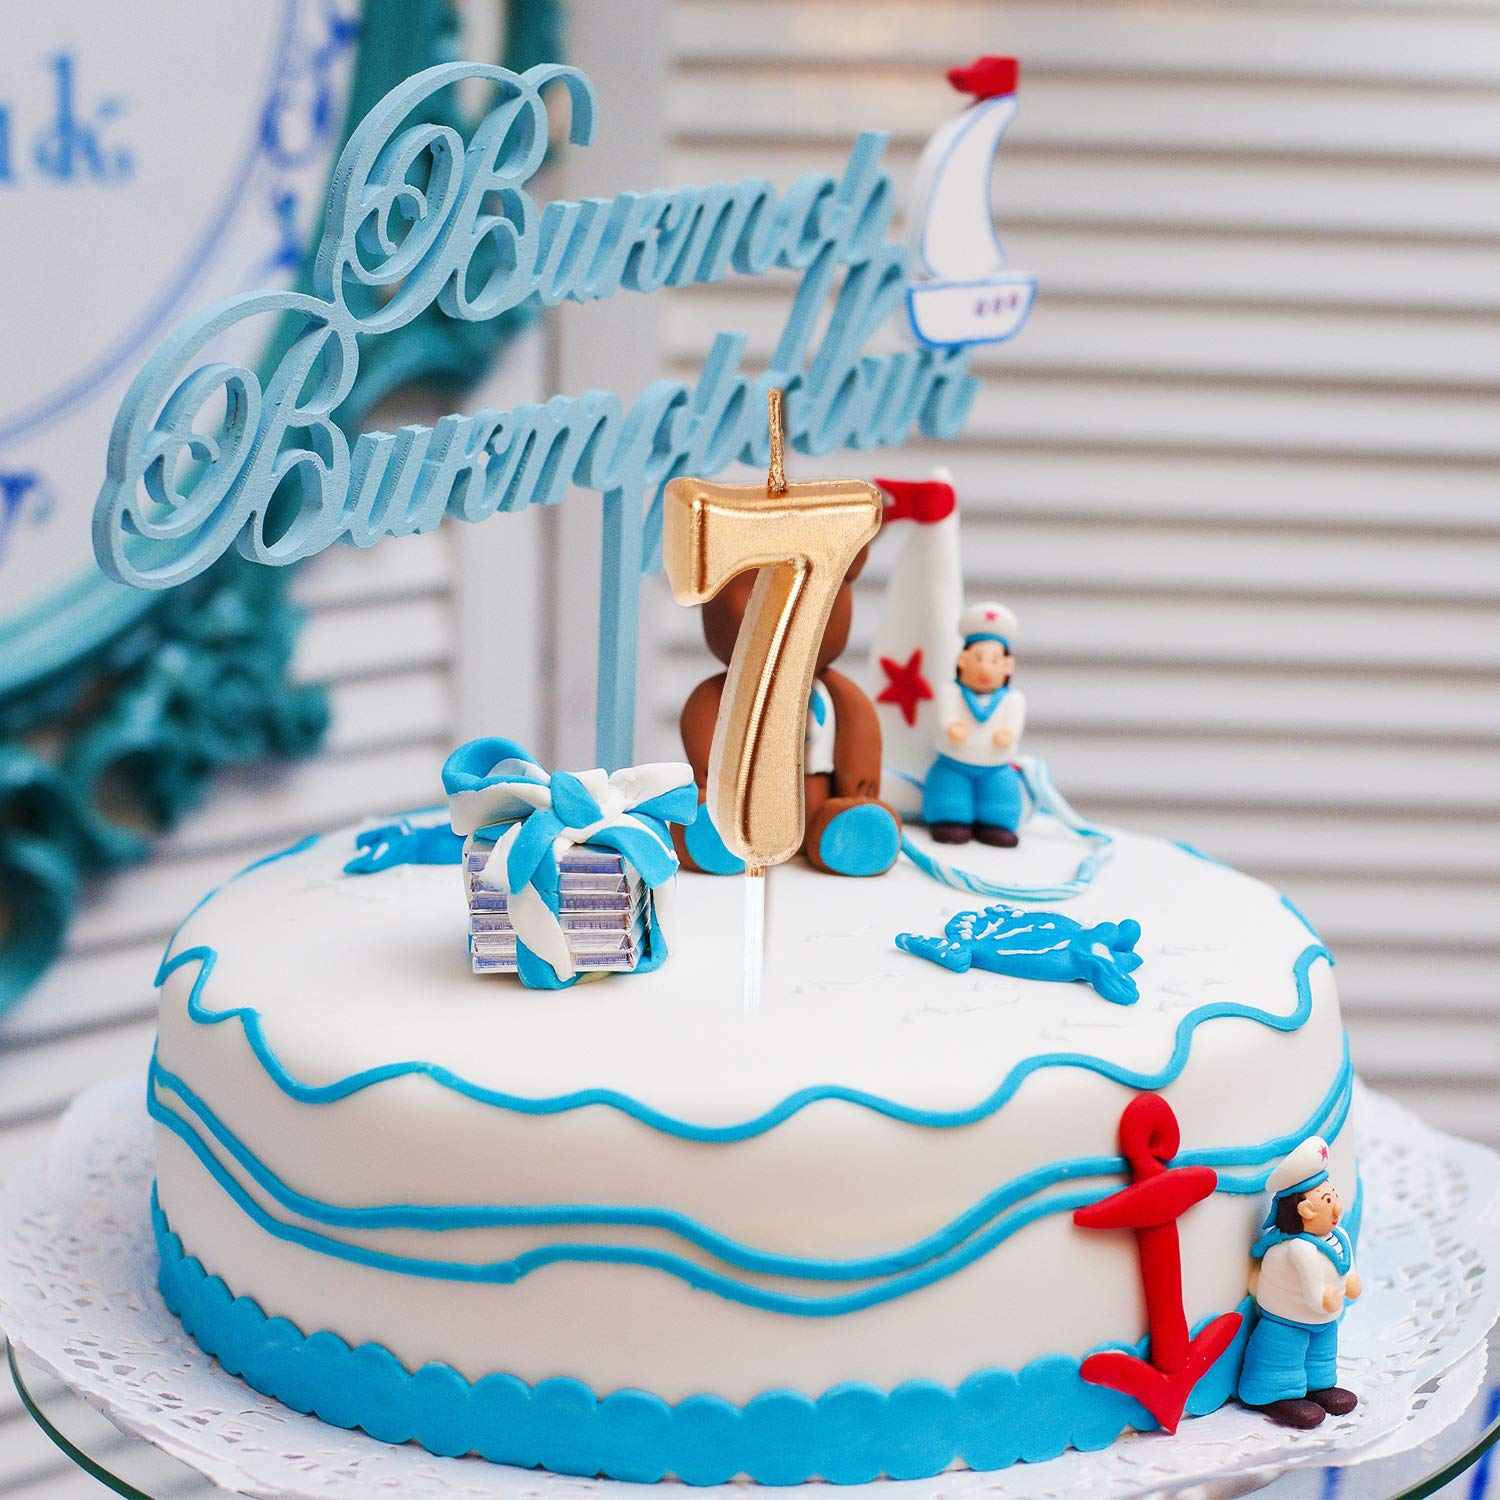 Blue Yaomiao 10 Pieces Birthday Numeral Candles Cake Numeral Candles Number 0-9 Glitter Cake Topper Decoration for Birthday Party Favor